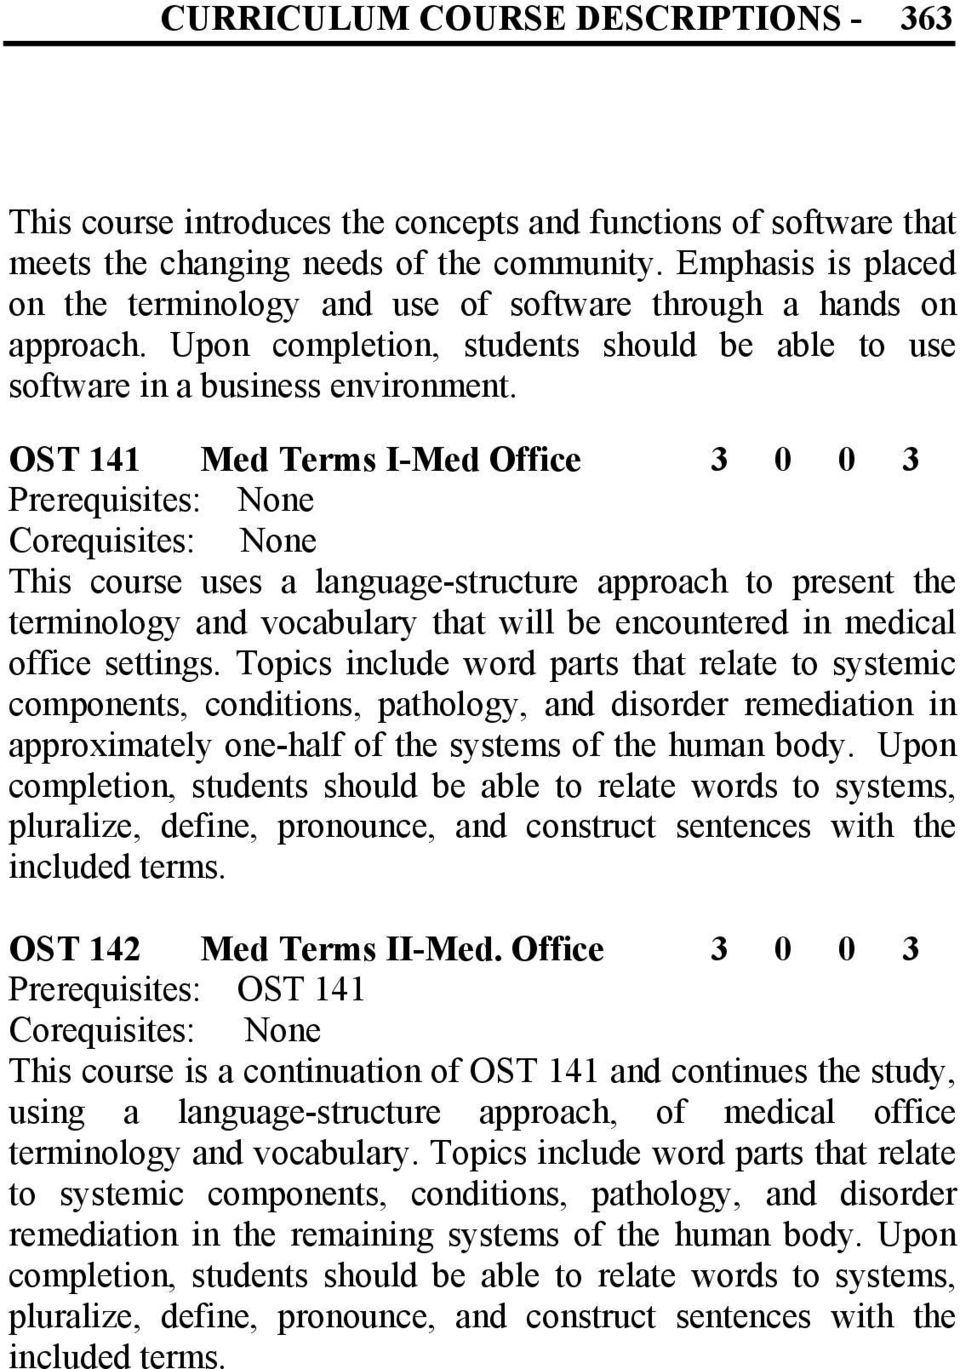 OST 141 Med Terms I-Med Office 3 0 0 3 This course uses a language-structure approach to present the terminology and vocabulary that will be encountered in medical office settings.